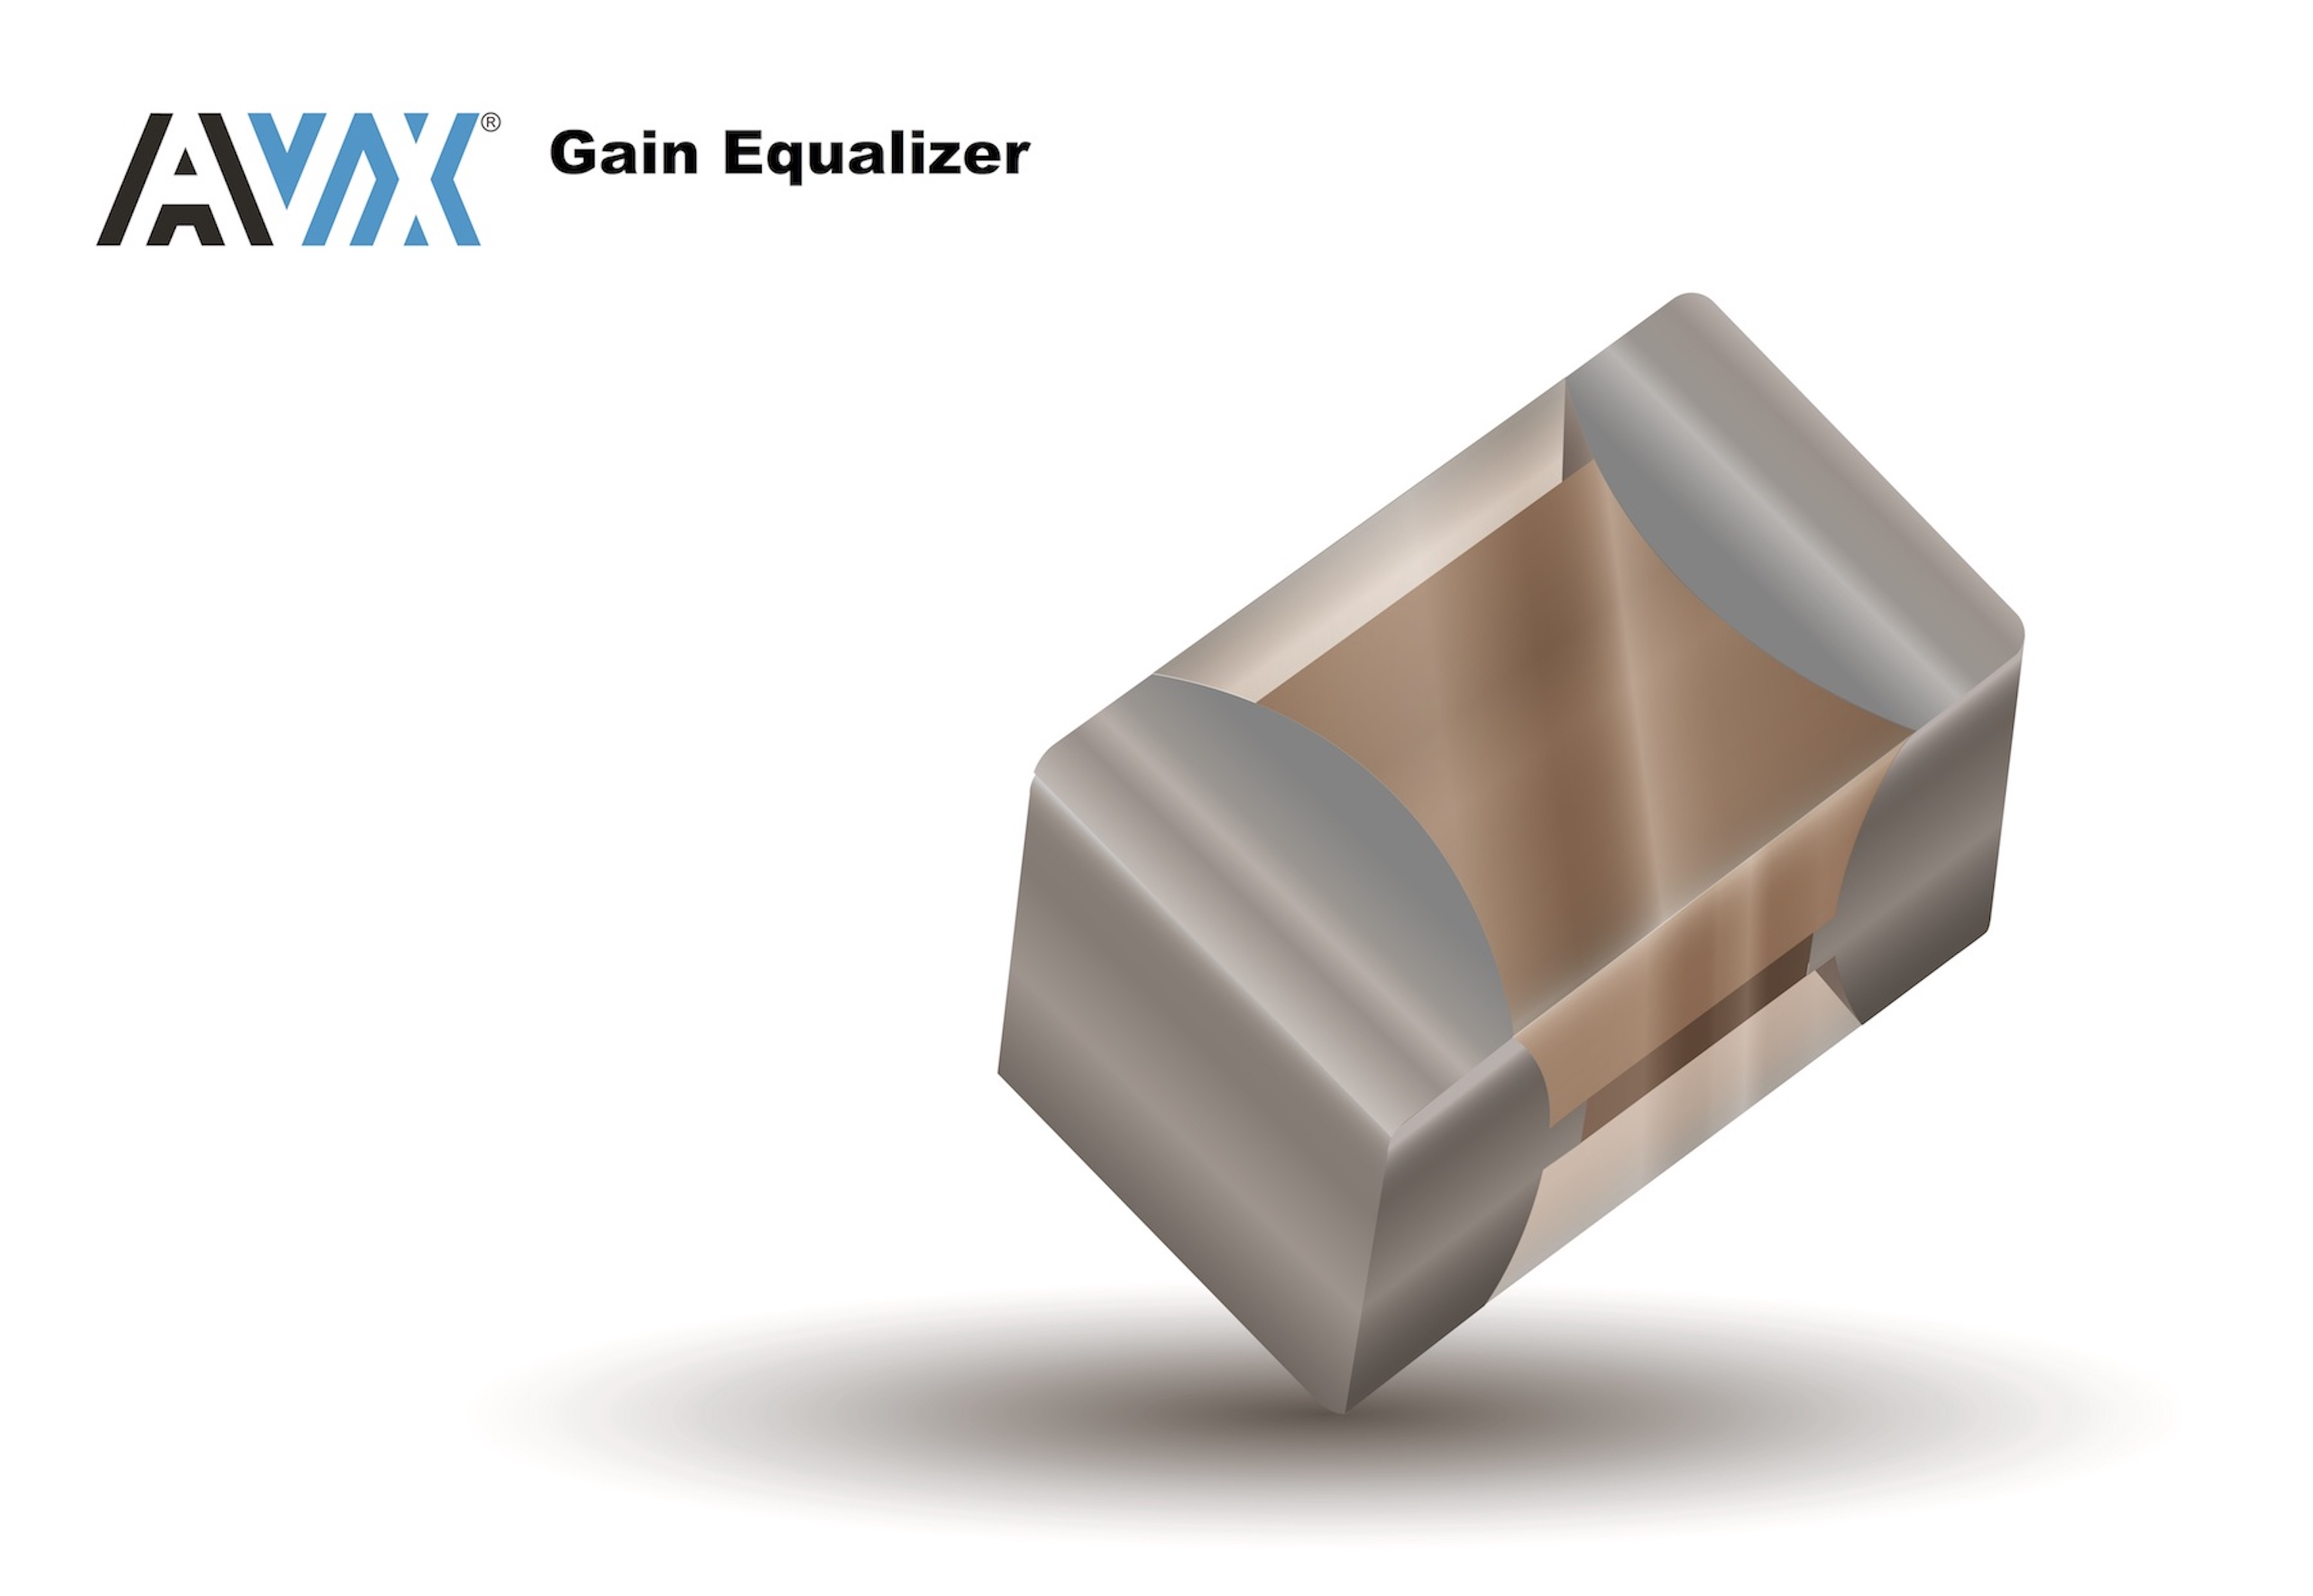 RC Equalizers Deliver Reliable, Tight-Tolerance Performance